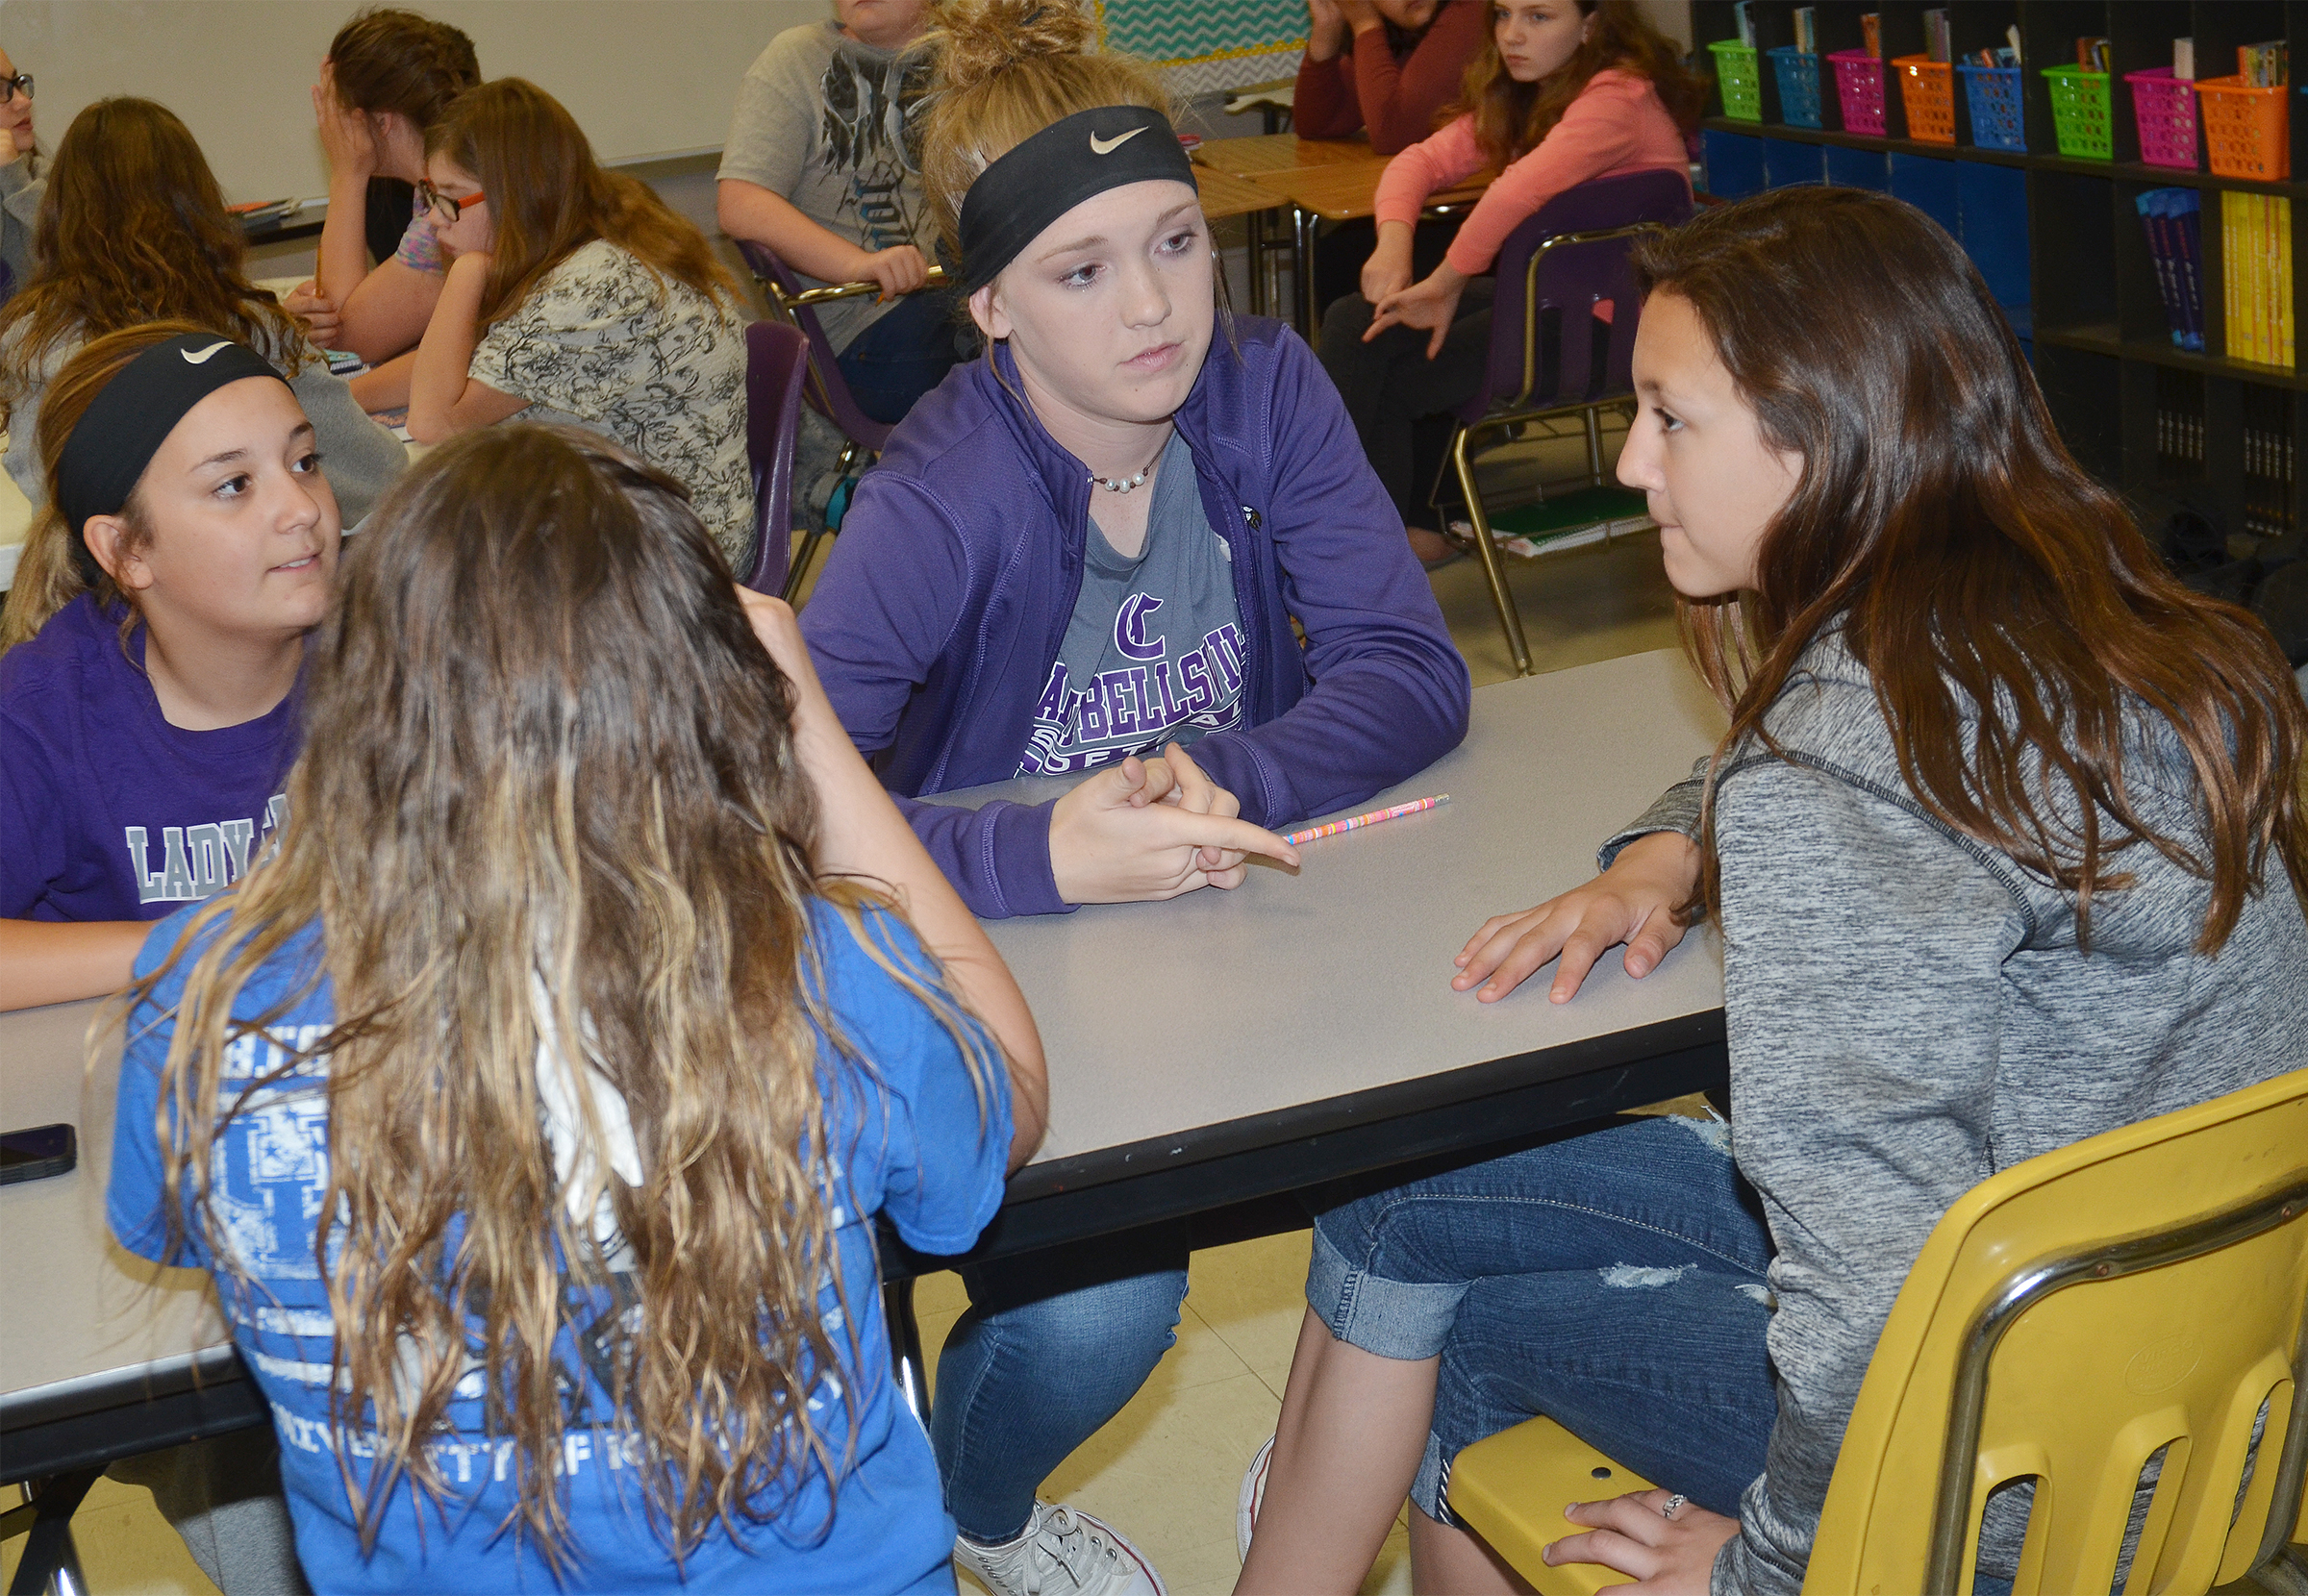 CMS sixth-grader Briana Davis, at left, and eighth-grader Catlyn Clausen talk with their teammates about a question.